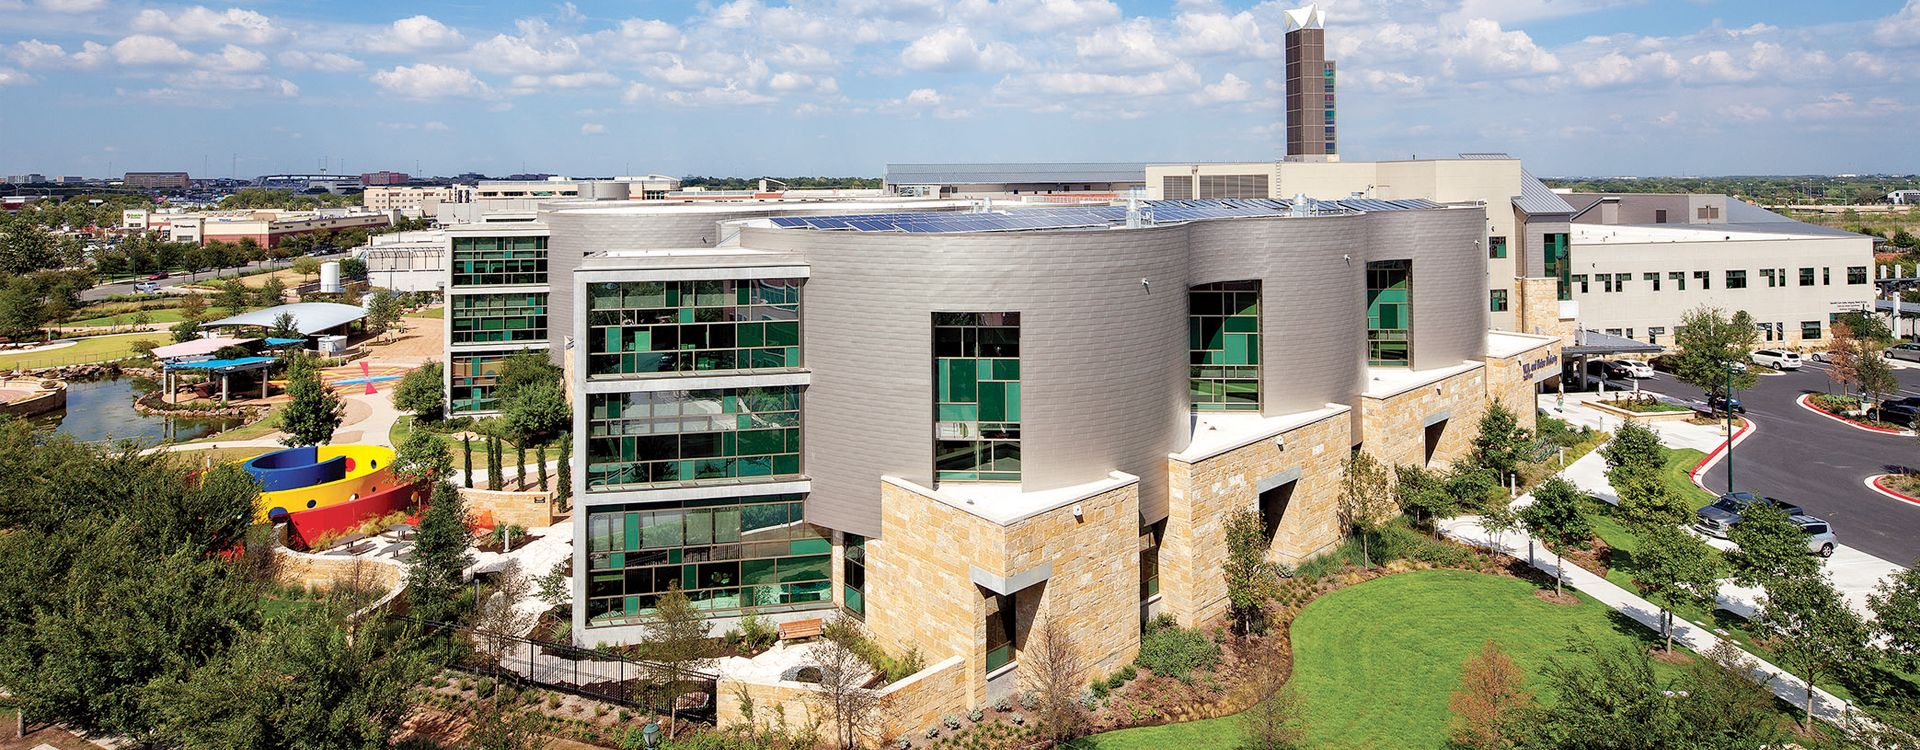 flw-top-building-trends-in-healthcare-dell-childrens-hospital